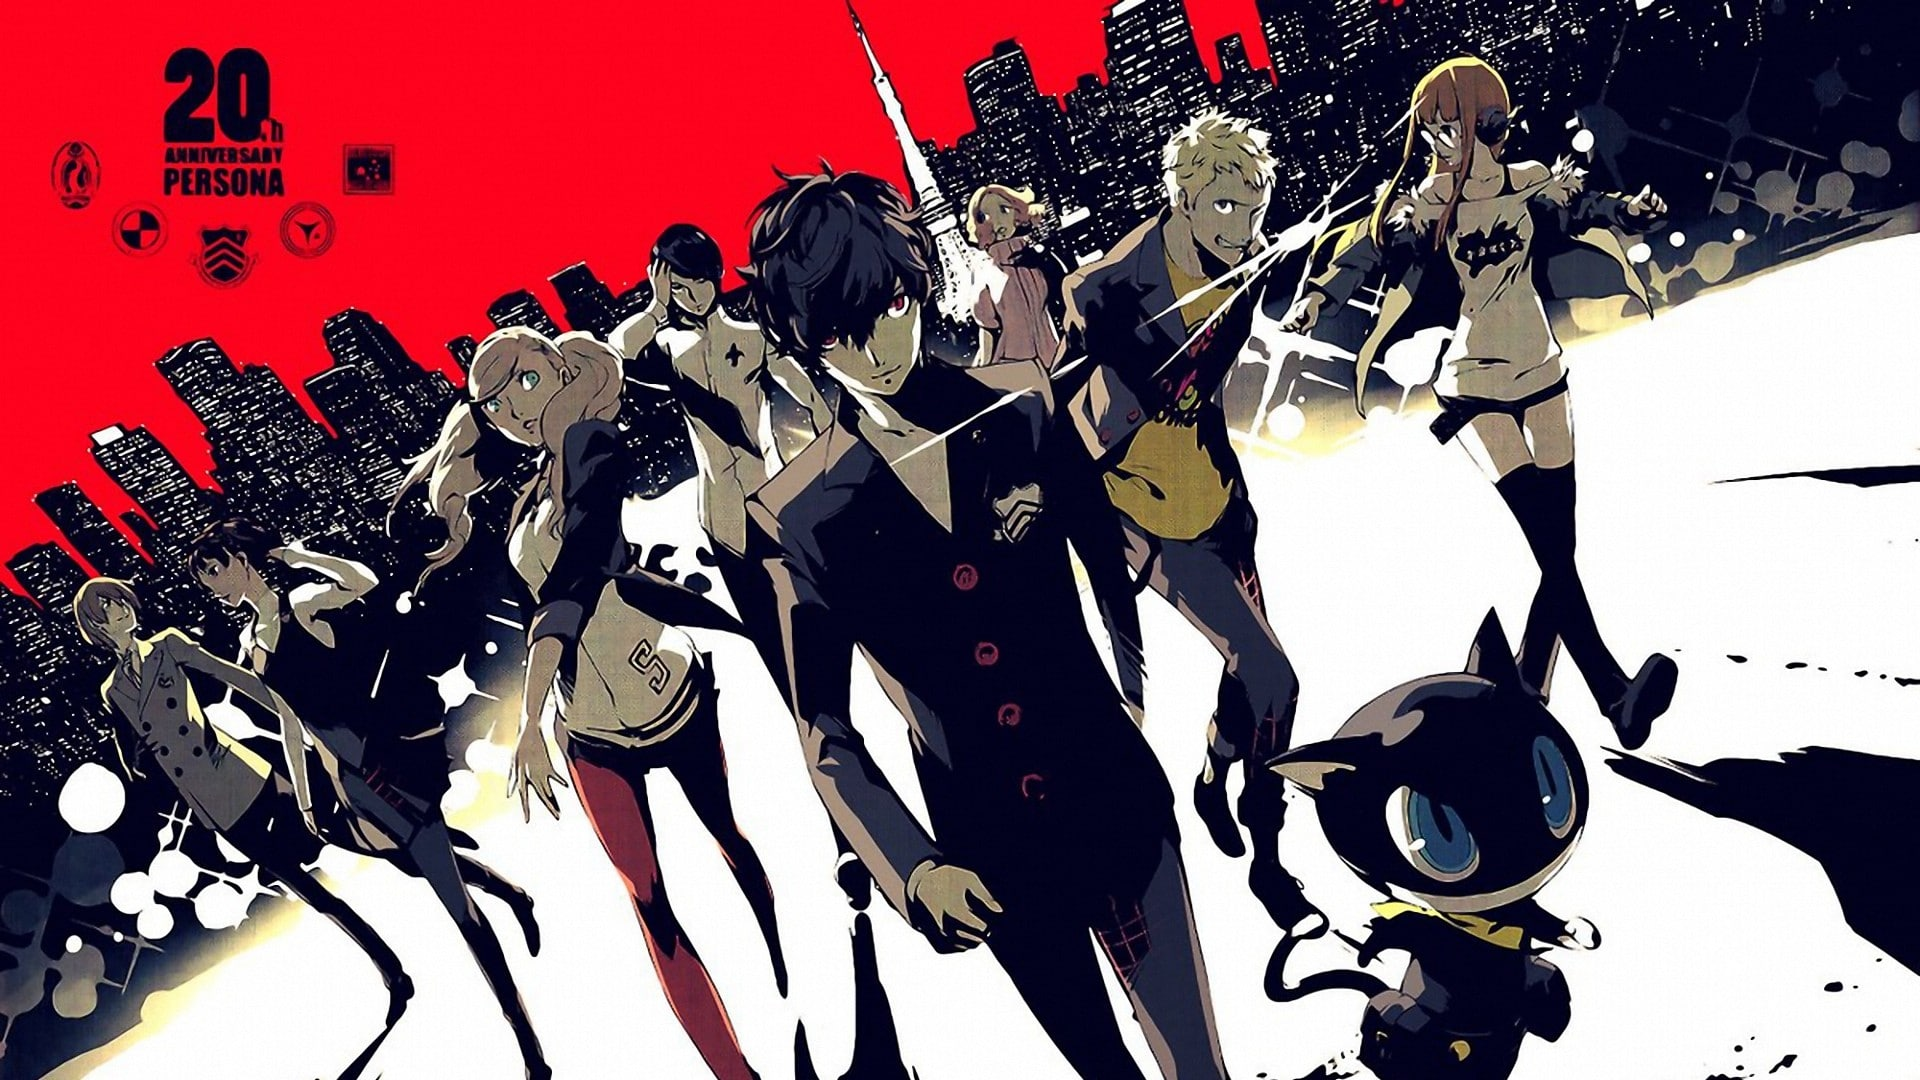 Persona Series – 10 Million+ copies sold worldwide